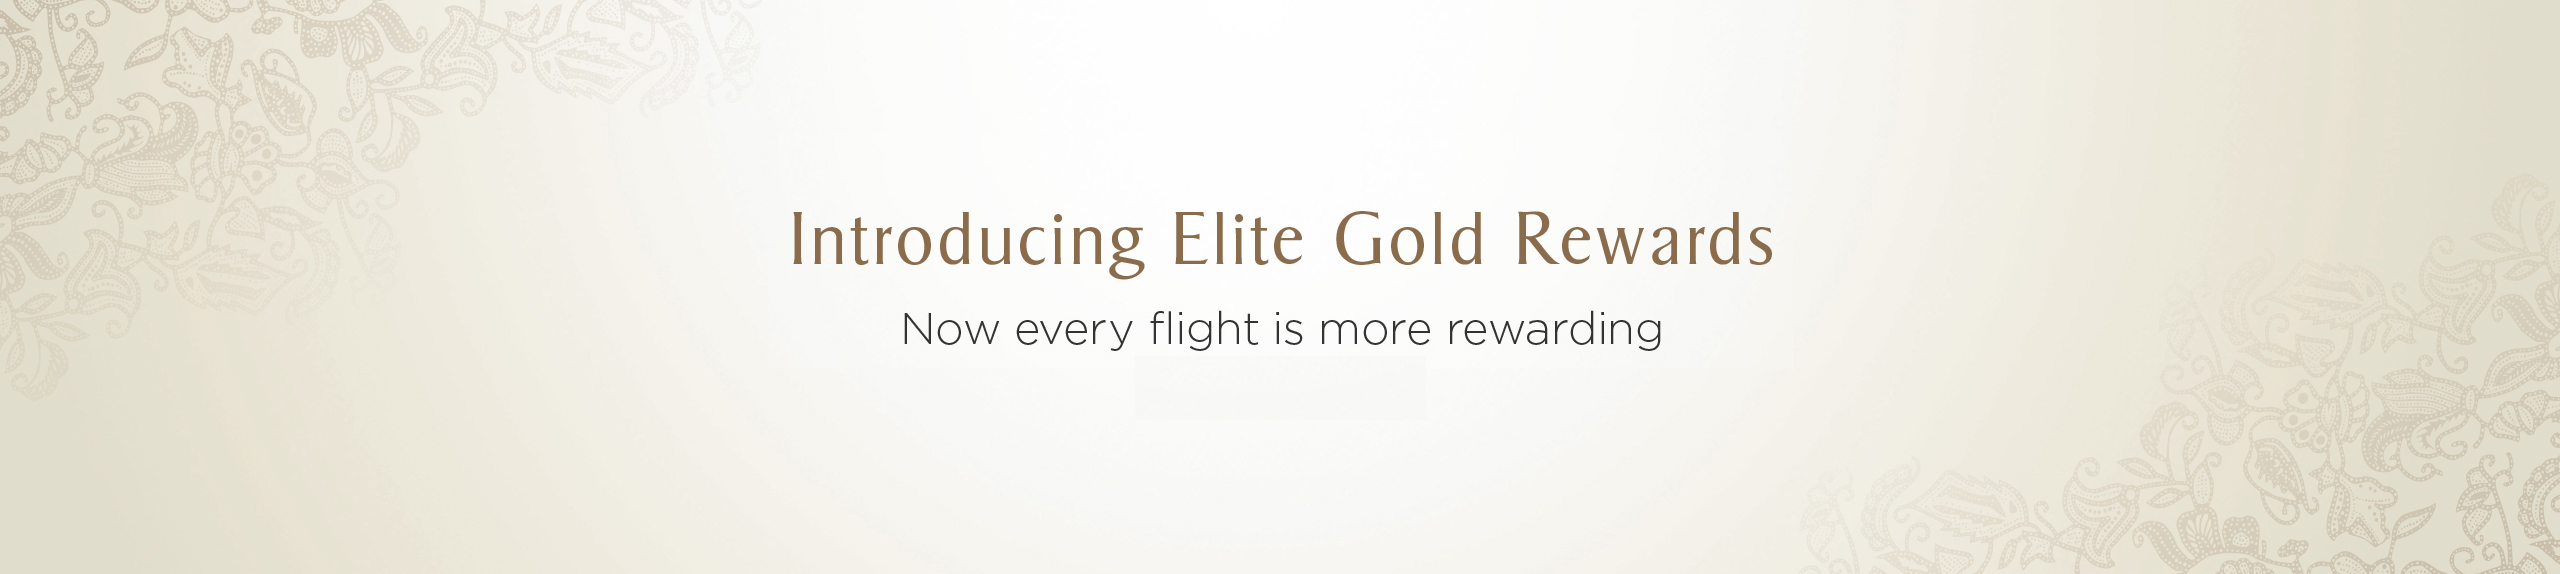 Elite Gold Rewards.jpg